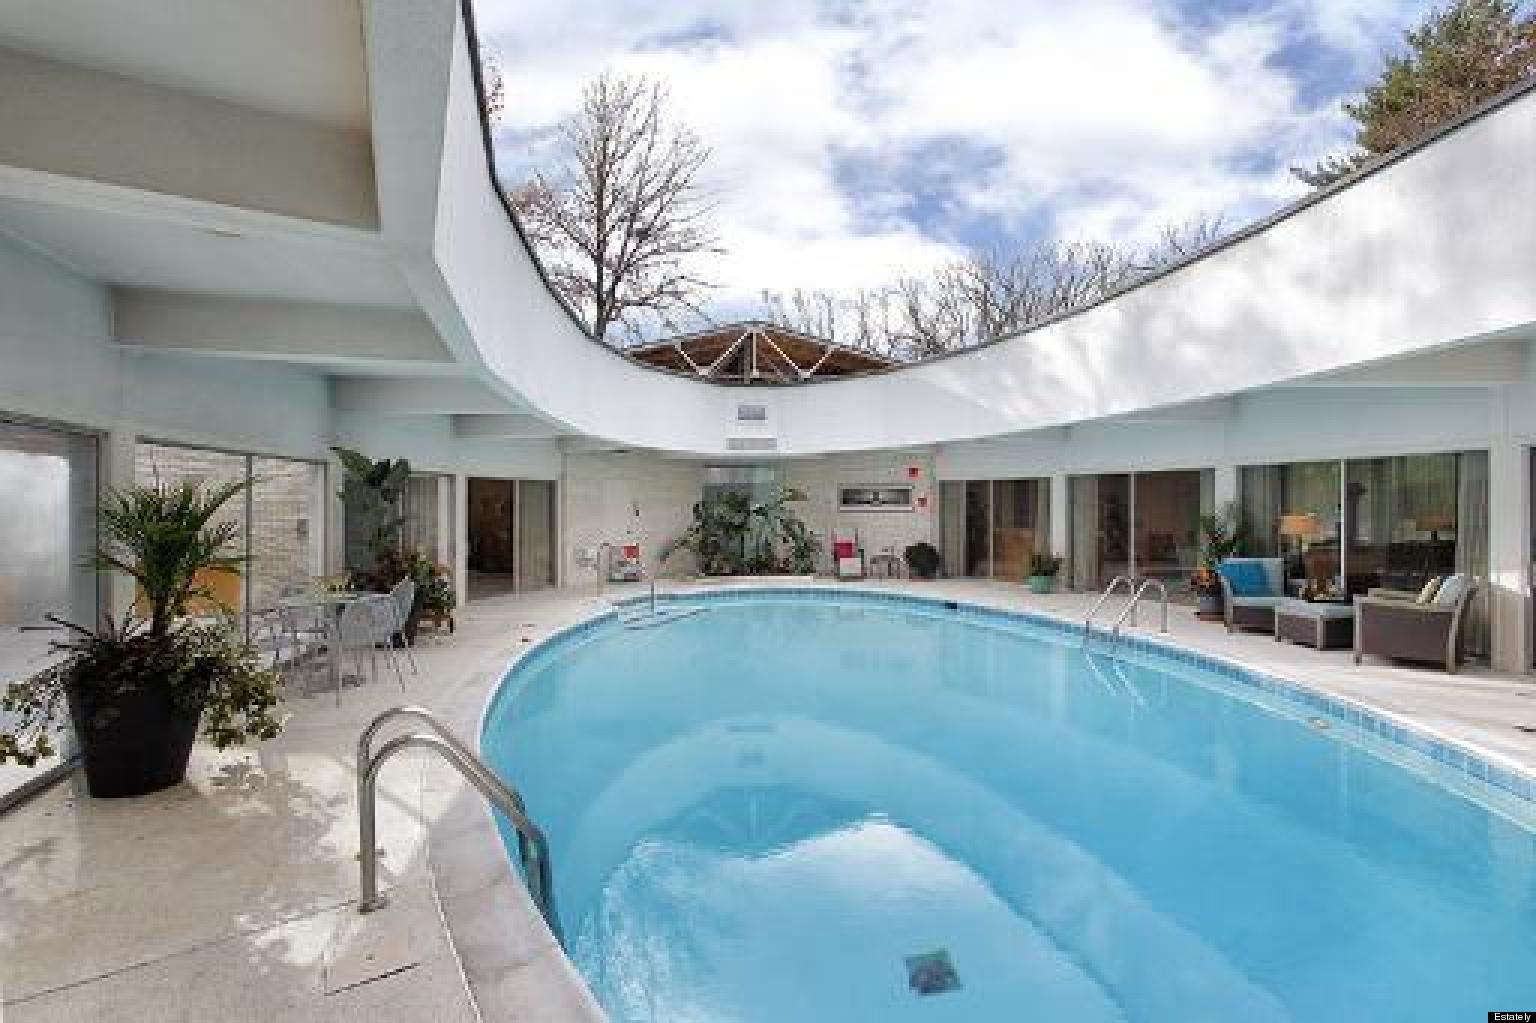 Highland Park Retractable Roof Home Is Nearly $1.4 Million Of Mid Century  Goodness (PHOTOS) | HuffPost